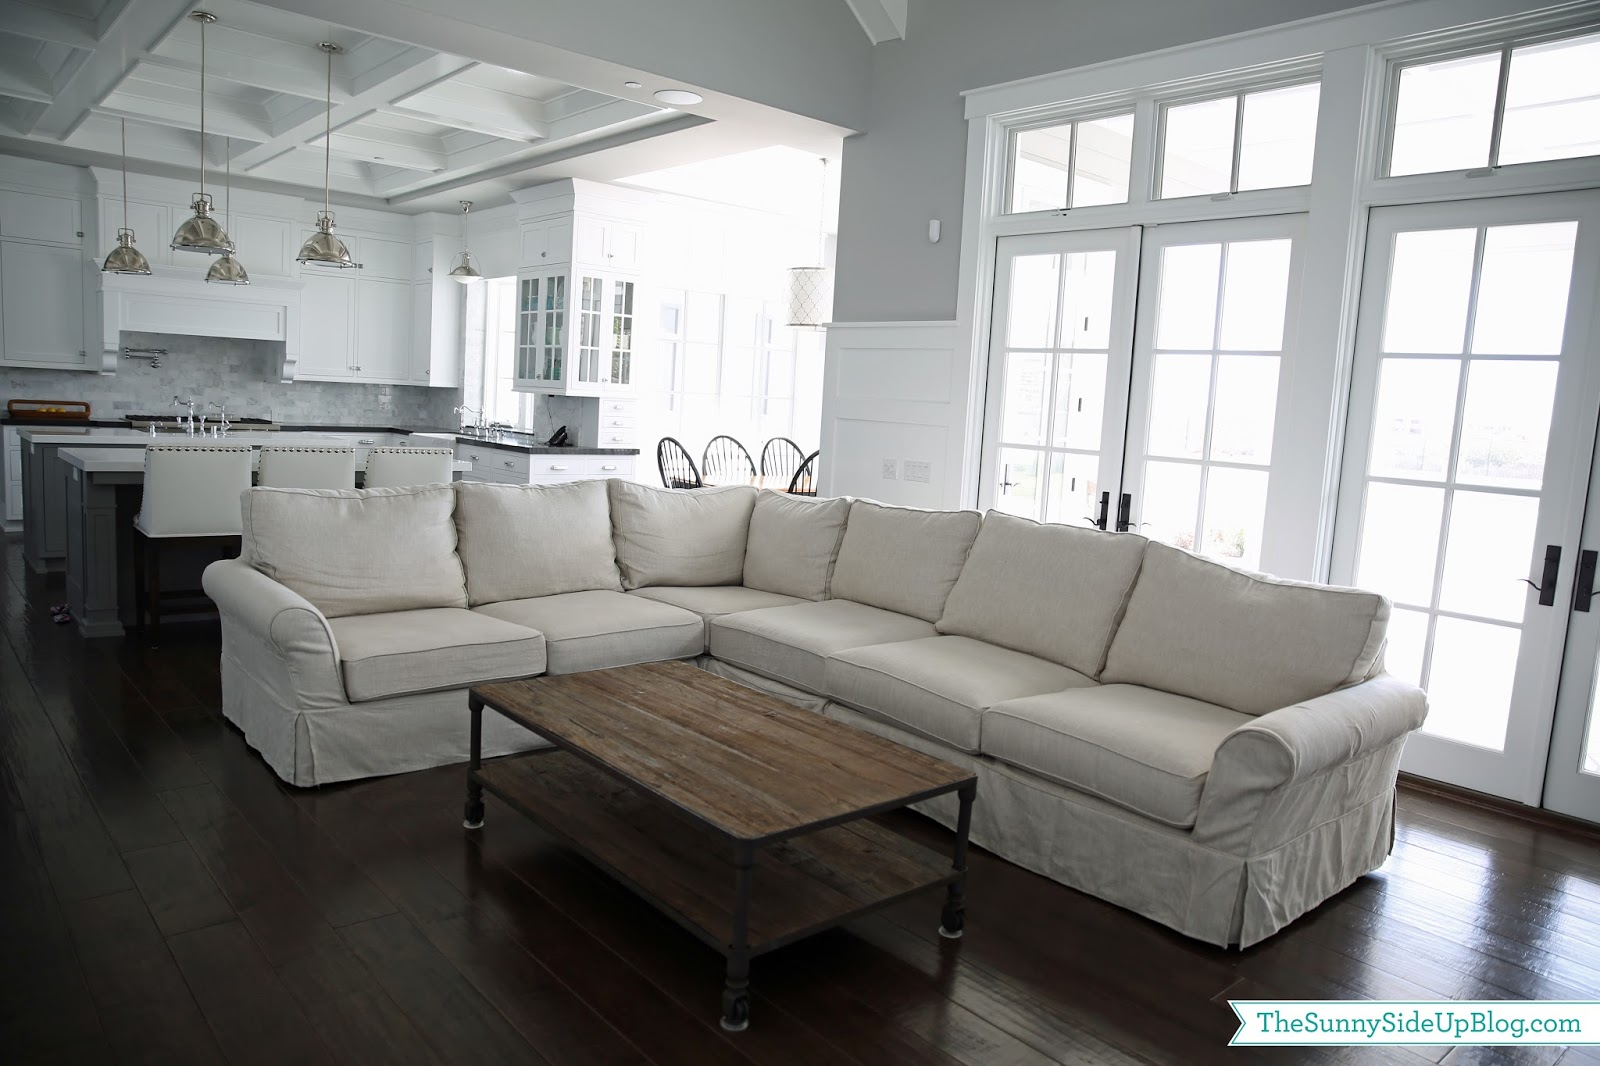 Restoration Hardware Dutch Industrial Coffee Table.Family Room Decor Update The Sunny Side Up Blog